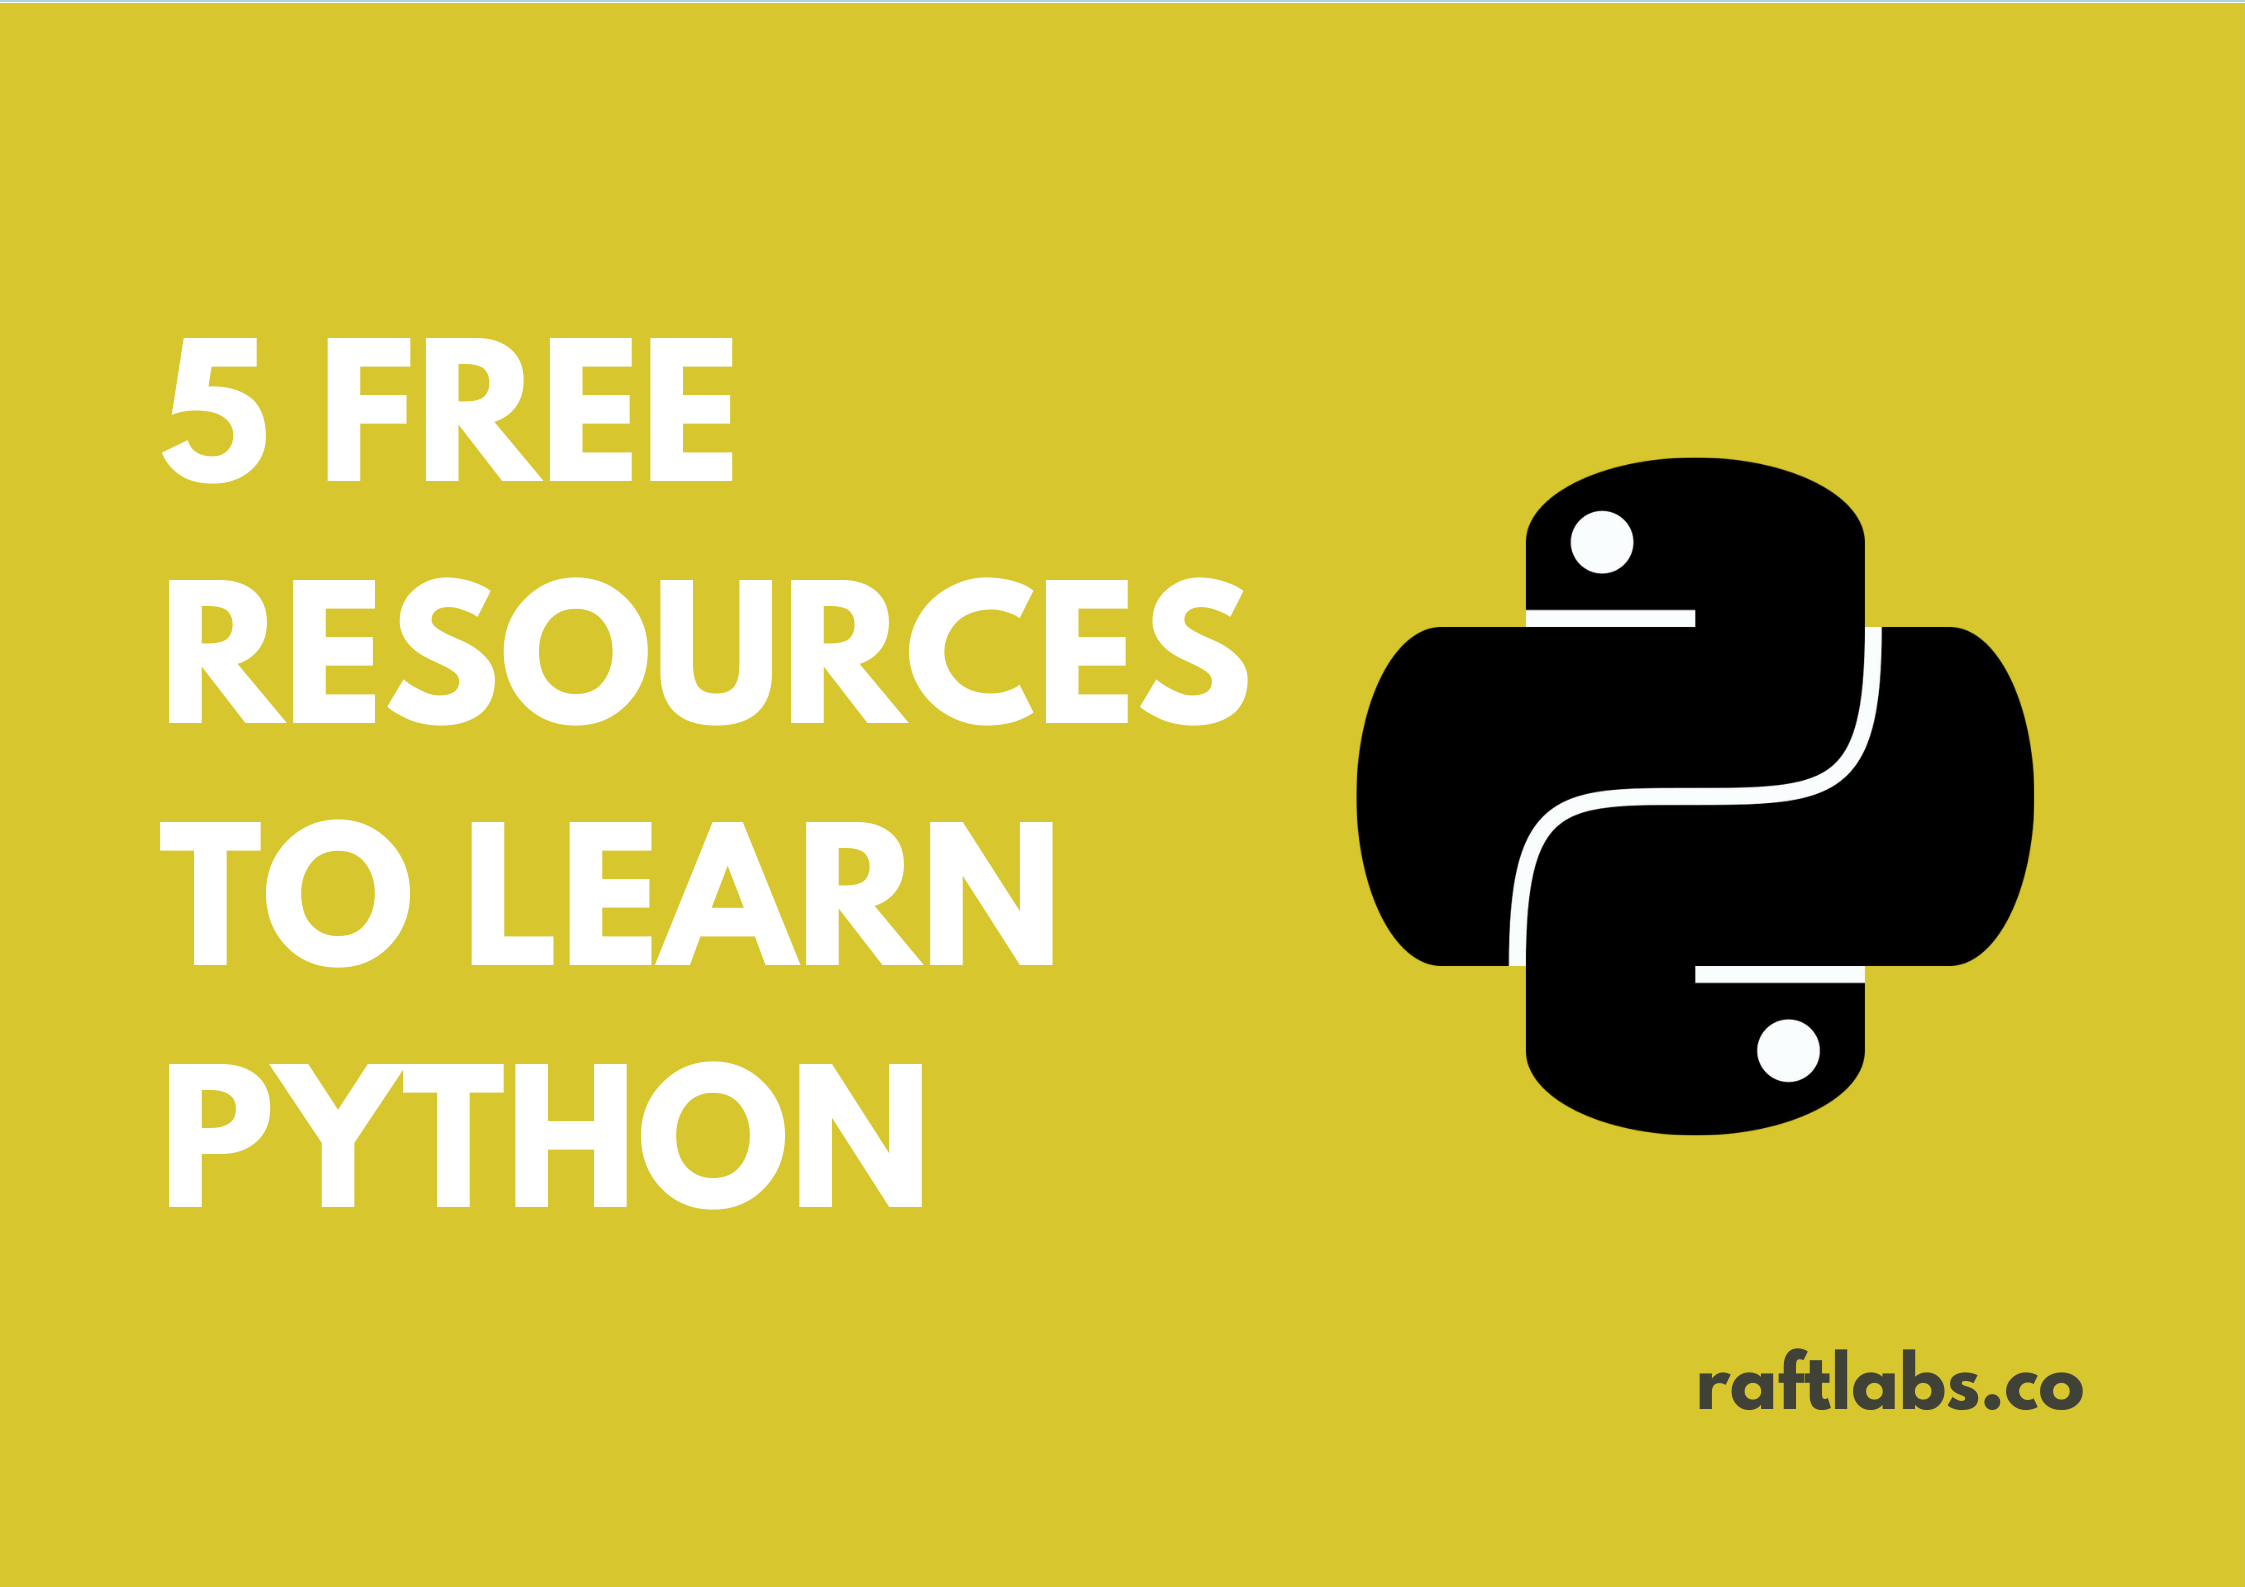 Best 5 Free Resources to learn Python with a black Python logo - raftlabs.co